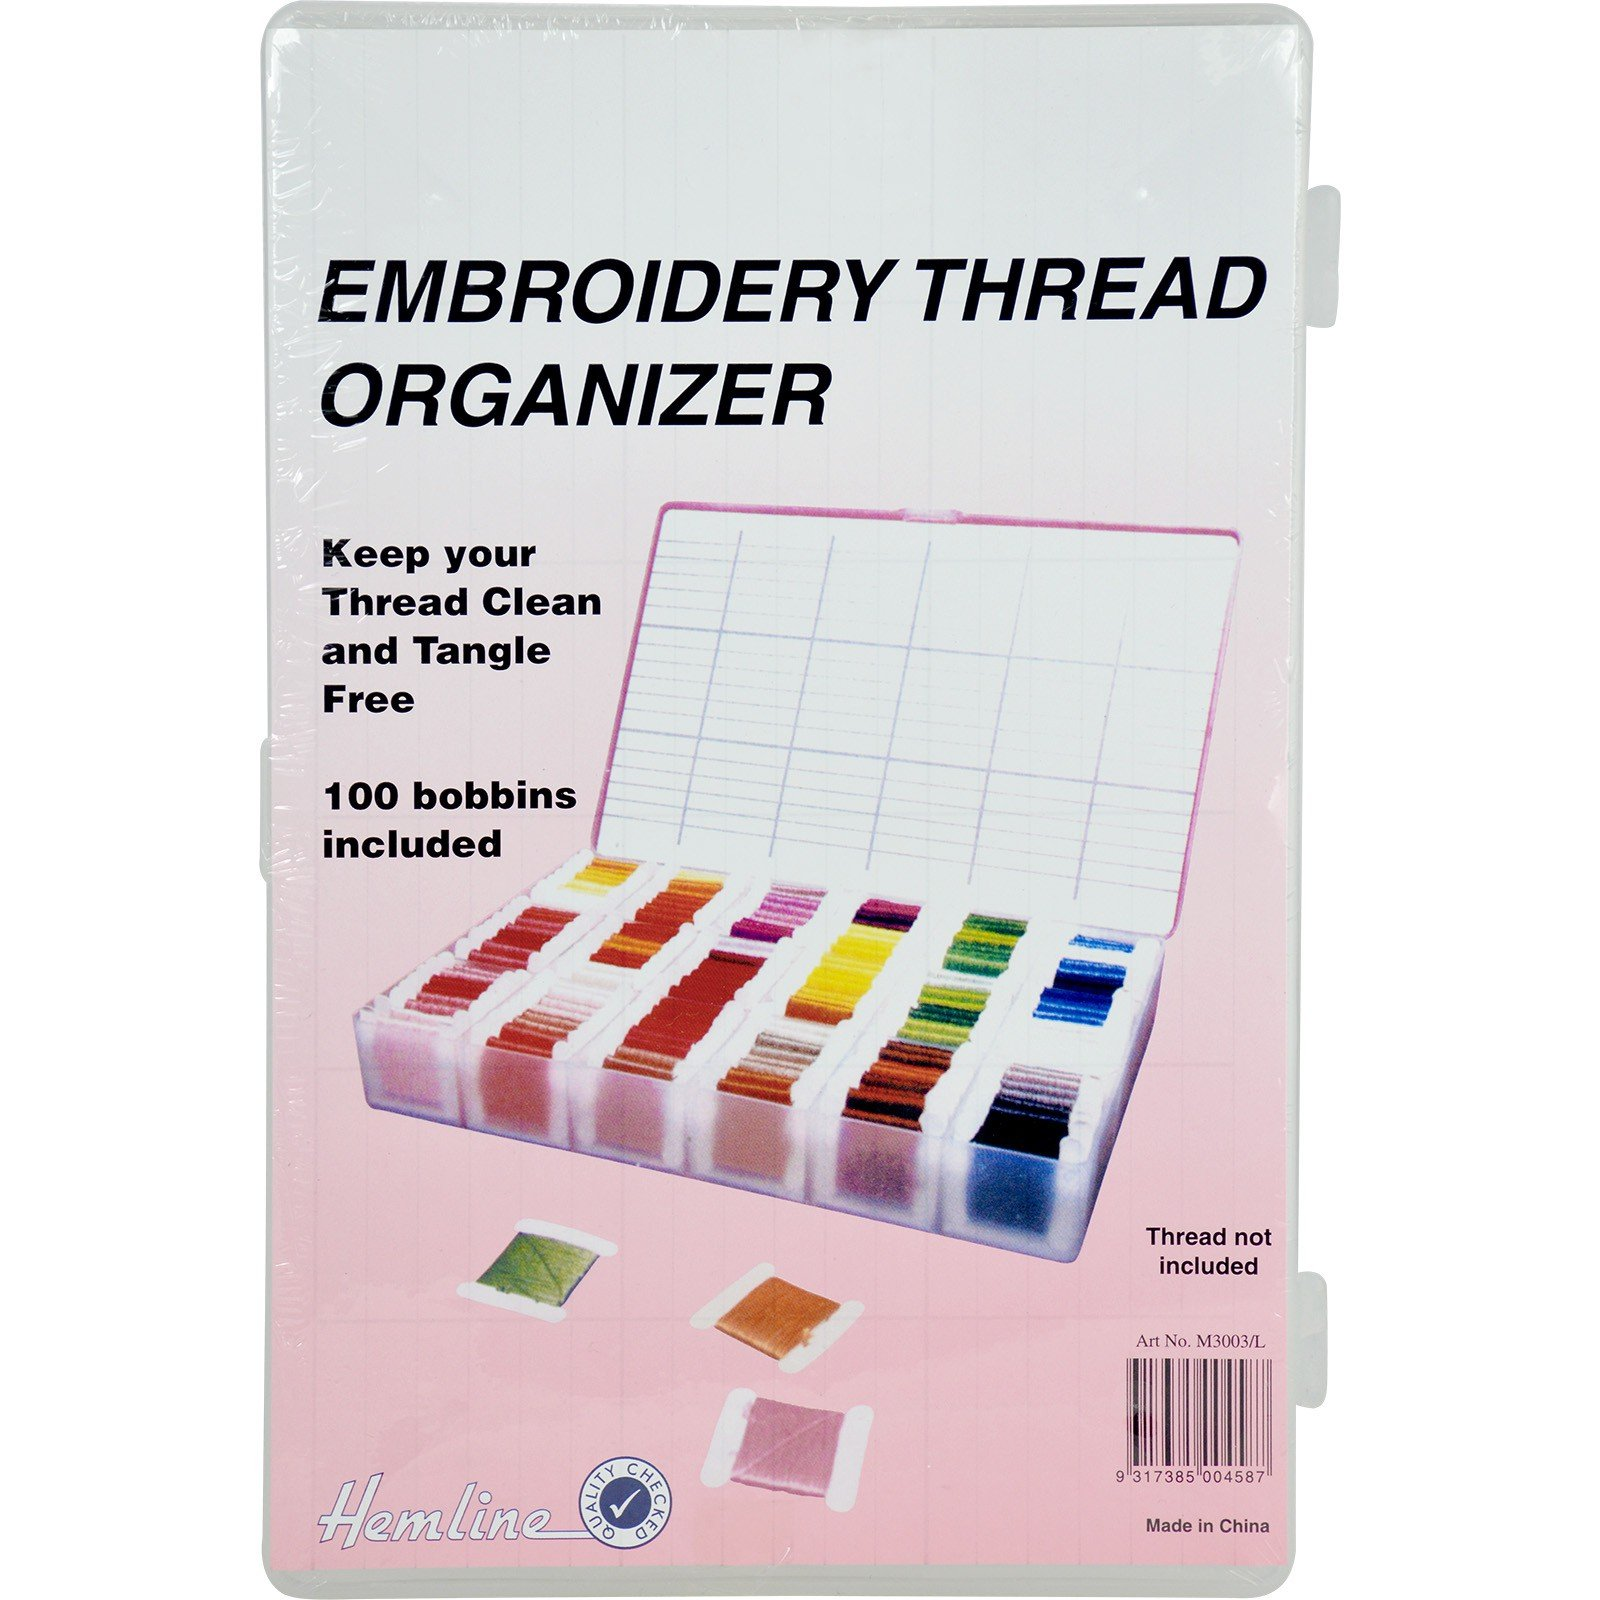 Embroidery Thread Organizer